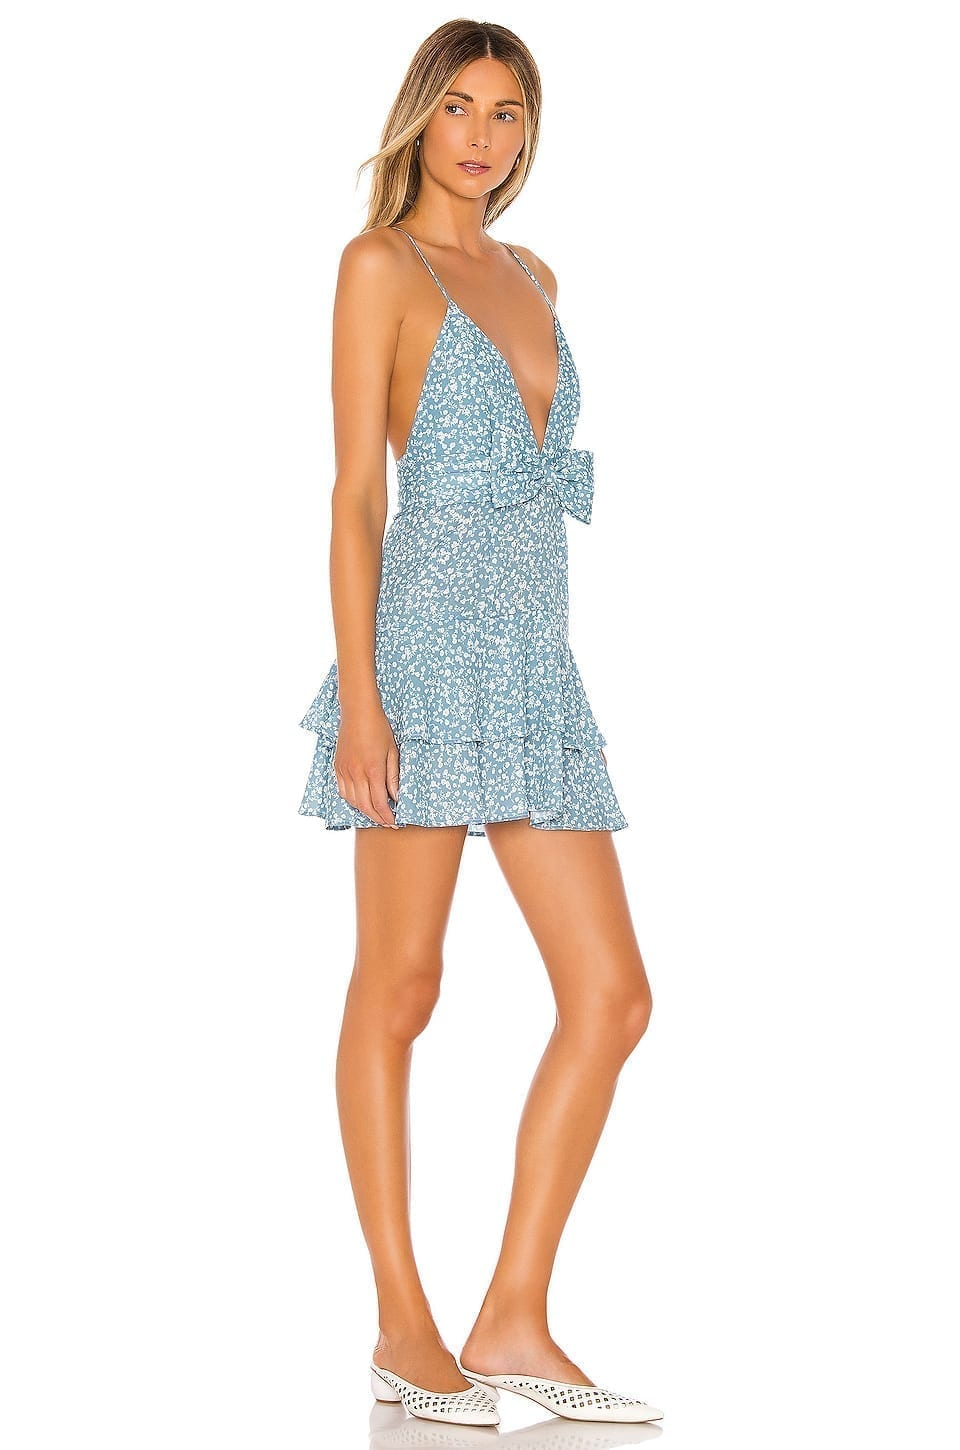 ENDLESS SUMMER Chloe Mini Dress